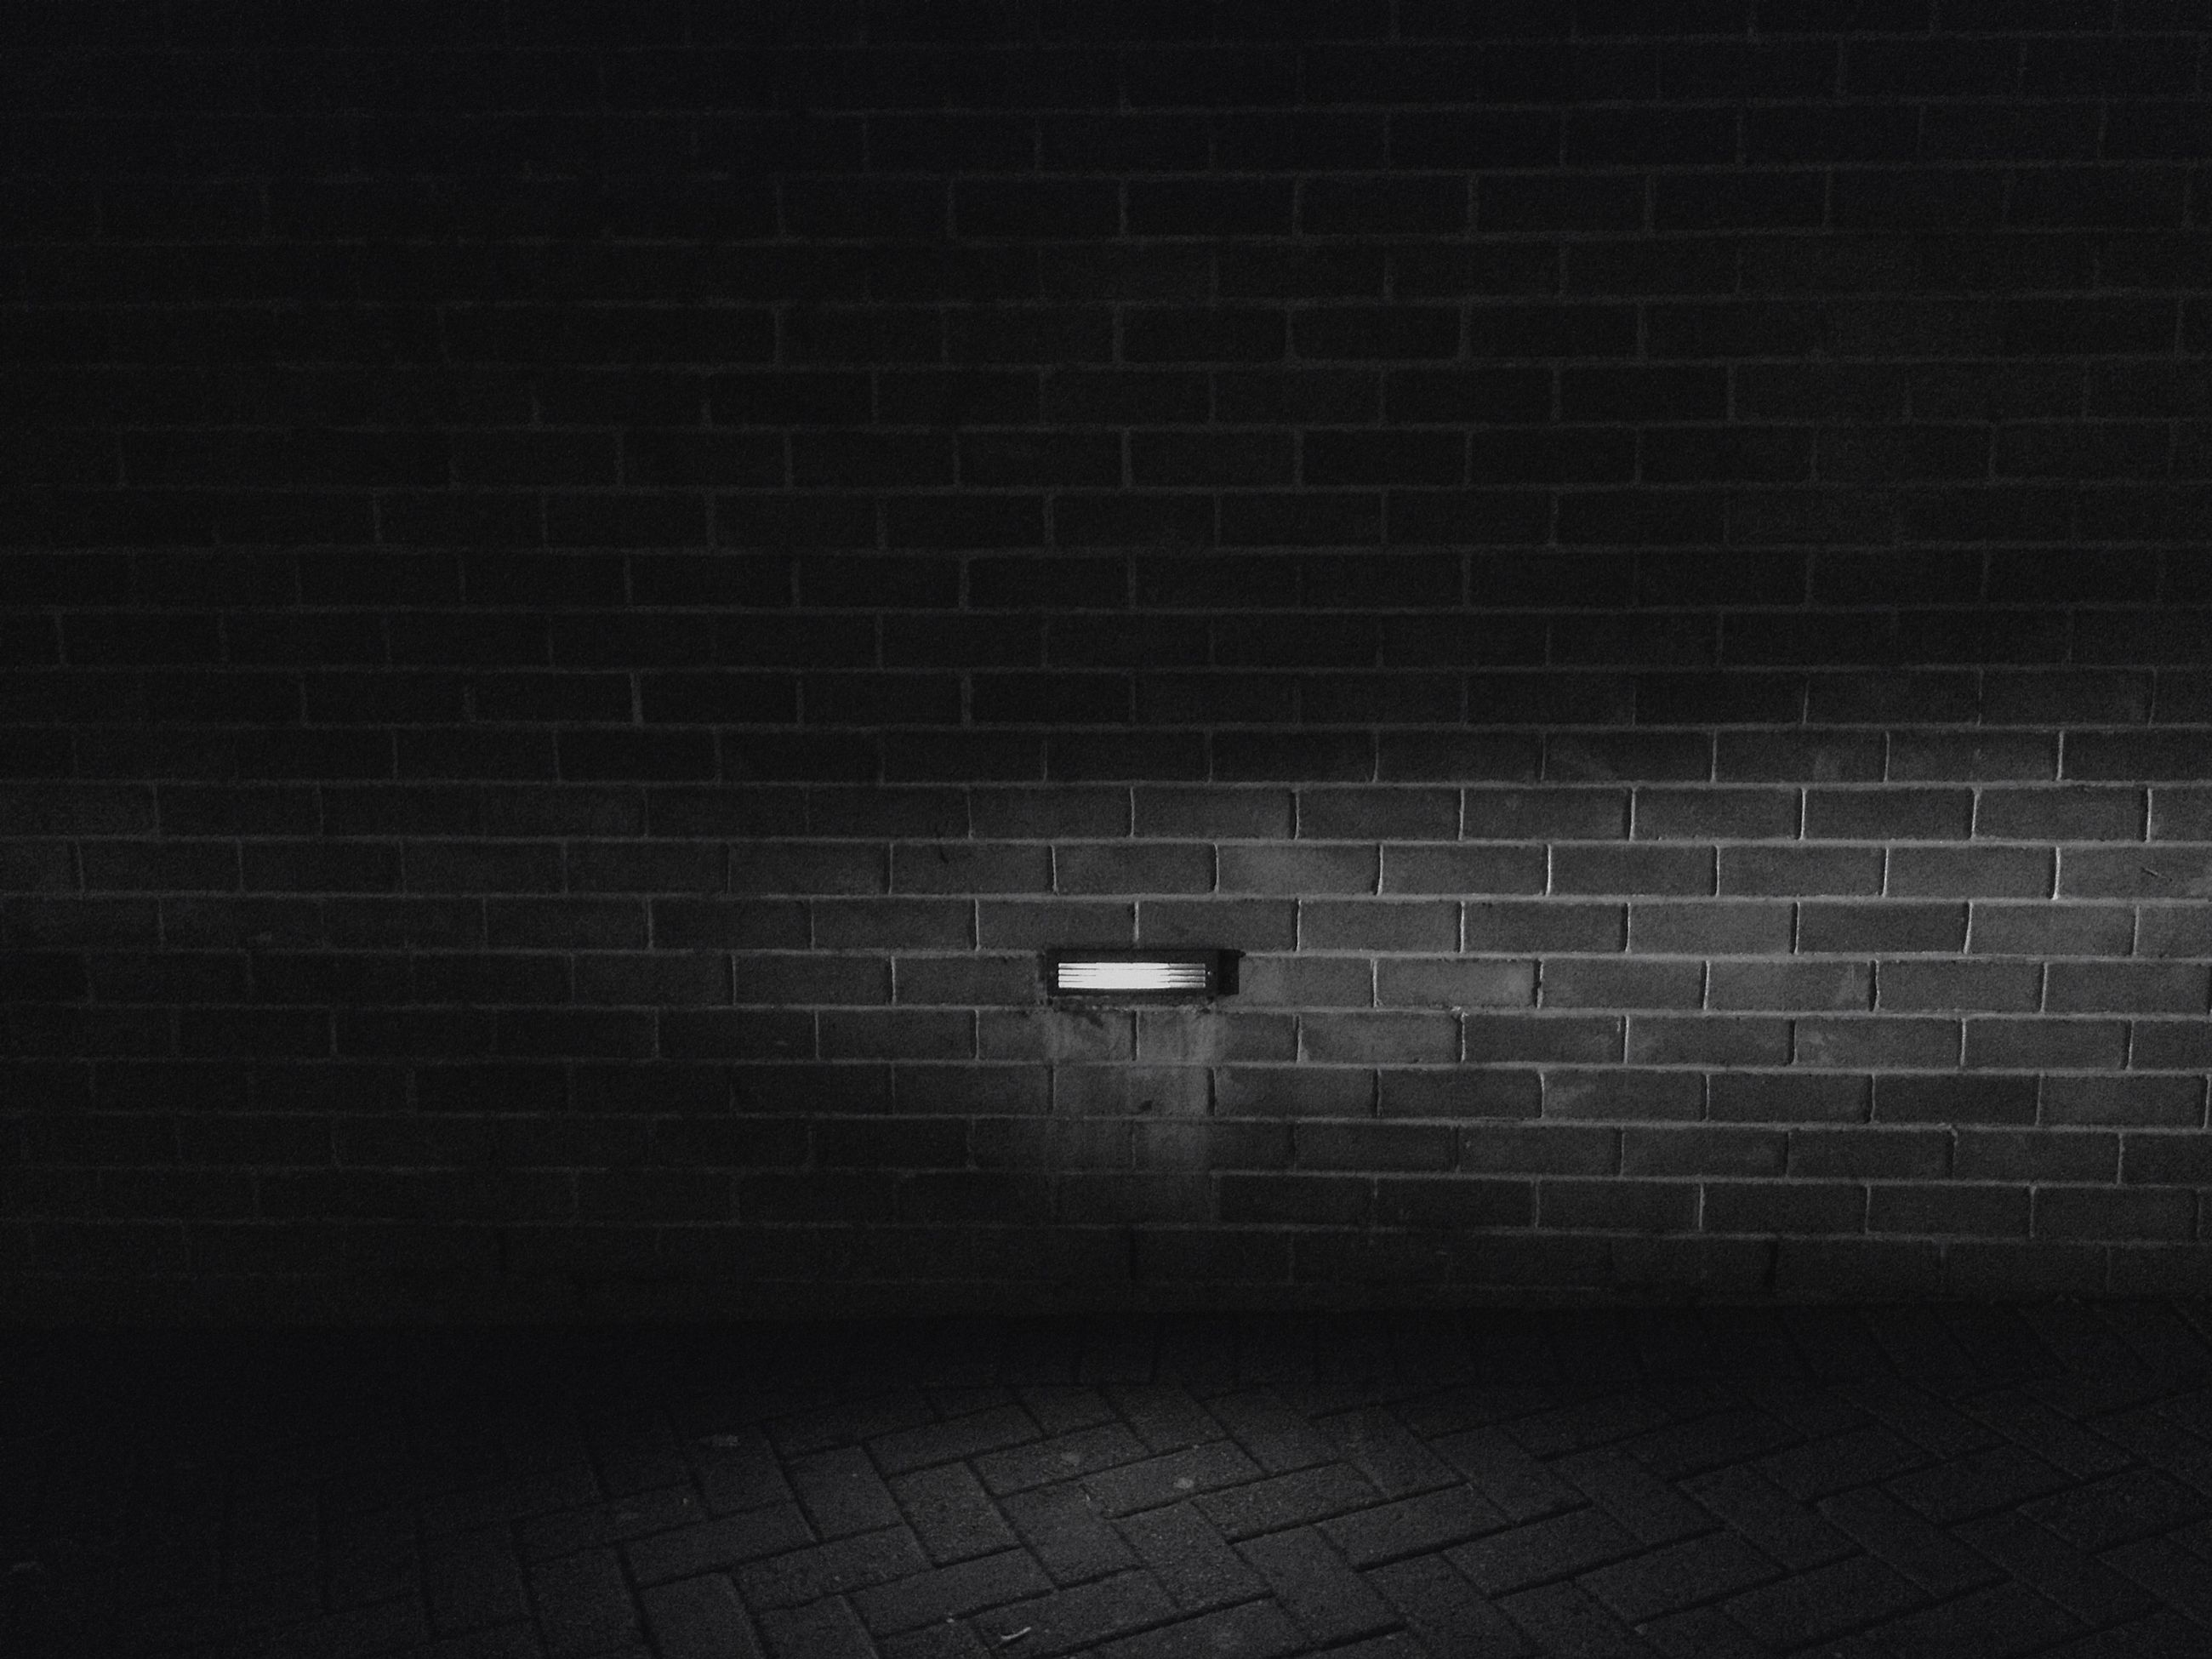 wall - building feature, built structure, architecture, night, brick wall, illuminated, building exterior, wall, no people, lighting equipment, pattern, abandoned, old, indoors, dark, high angle view, street, shadow